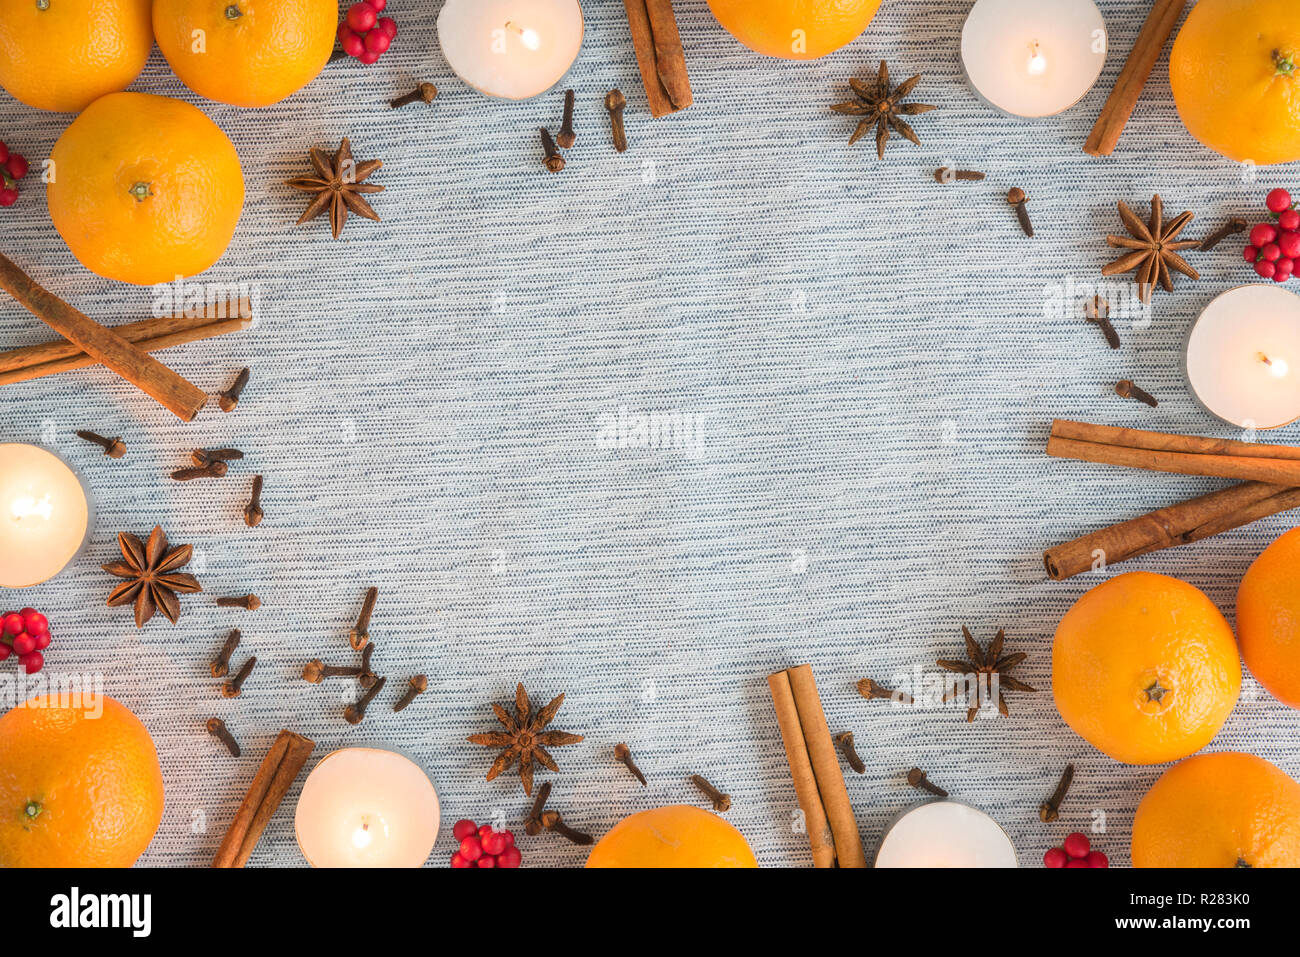 Christmas flat lay frame of oranges, candles, and spices - Stock Image